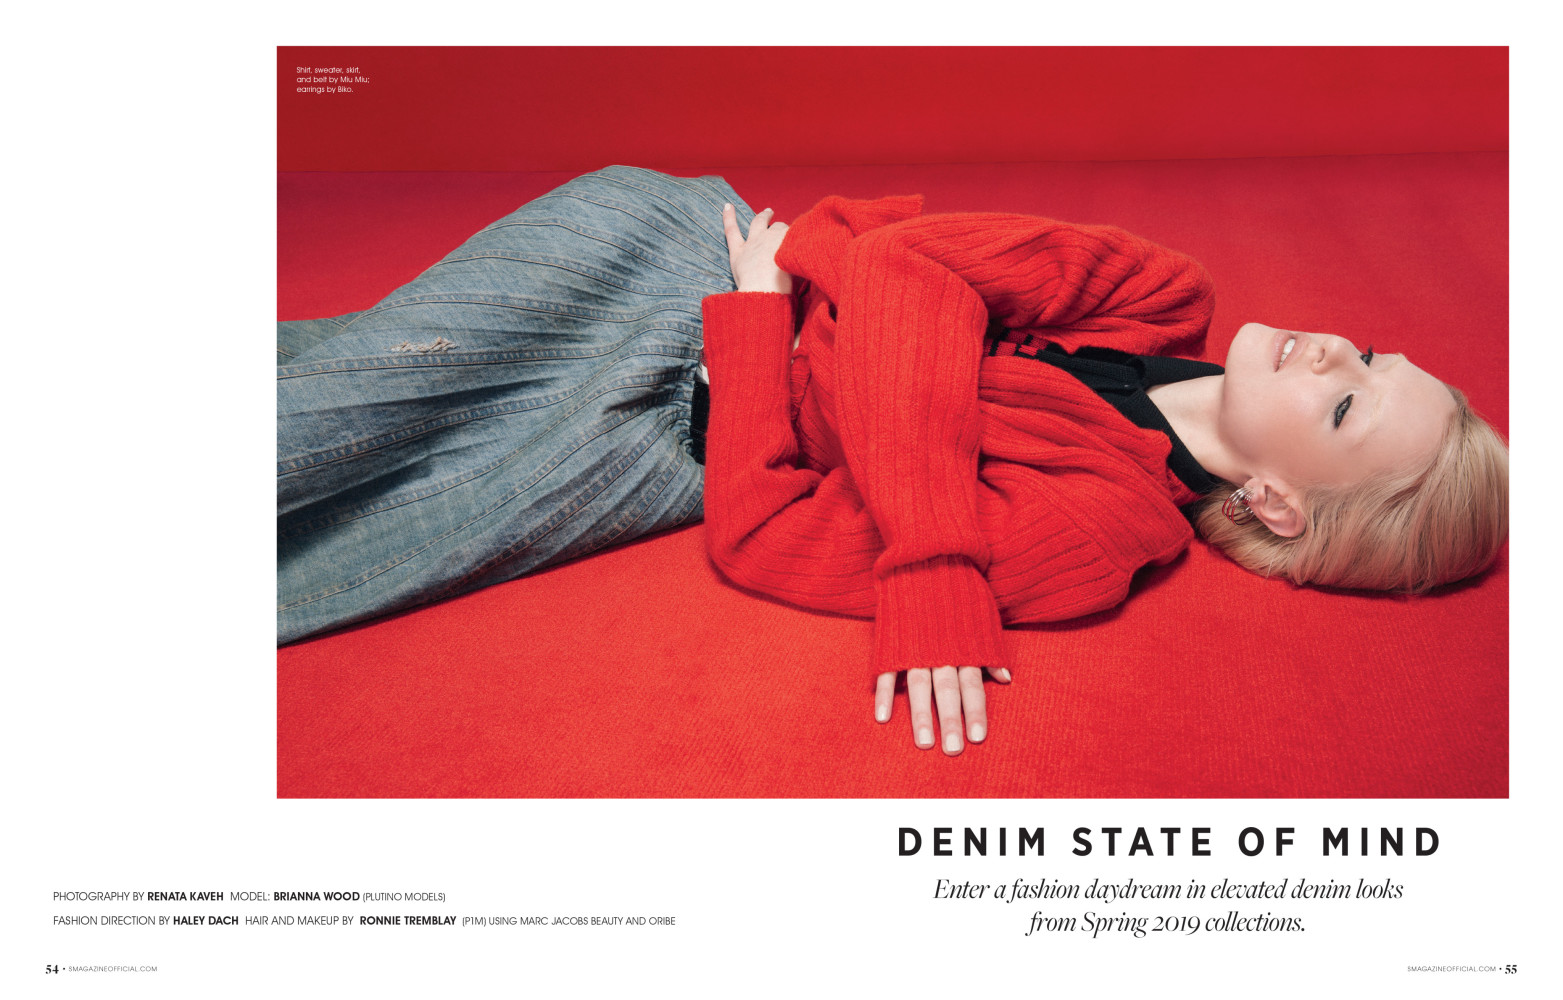 S/MAGAZINE - DENIM